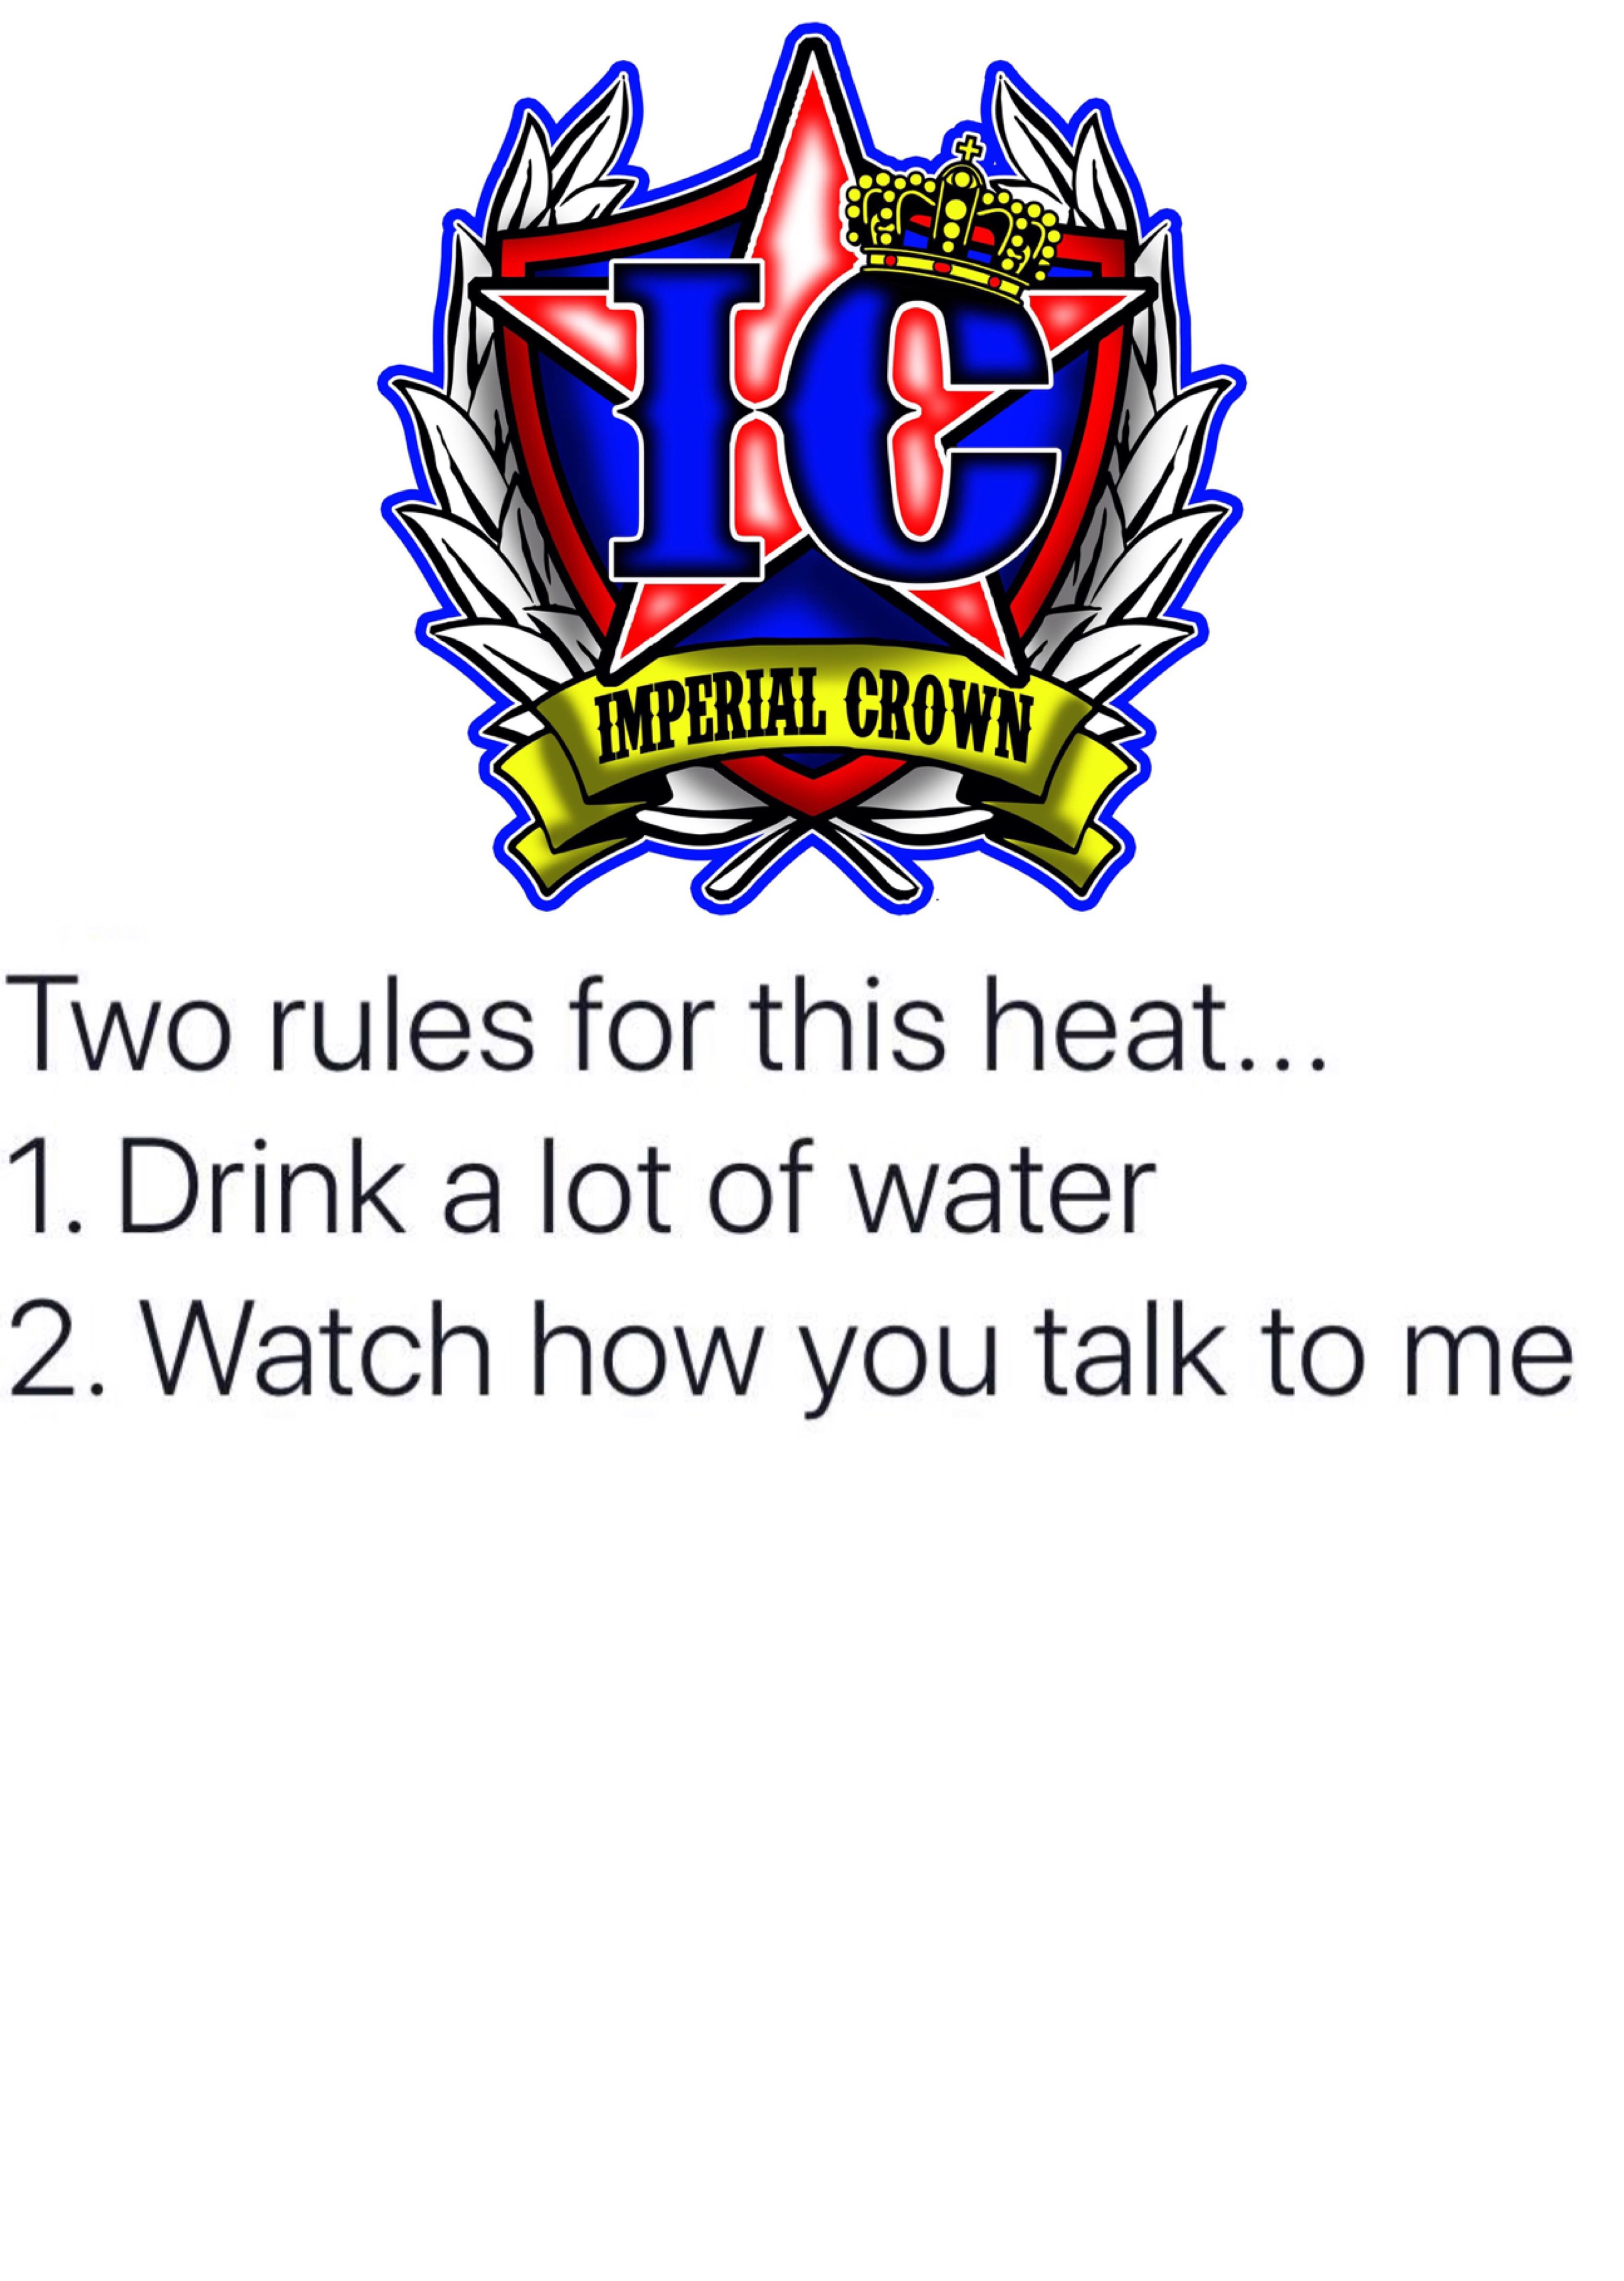 Two rules for this heat